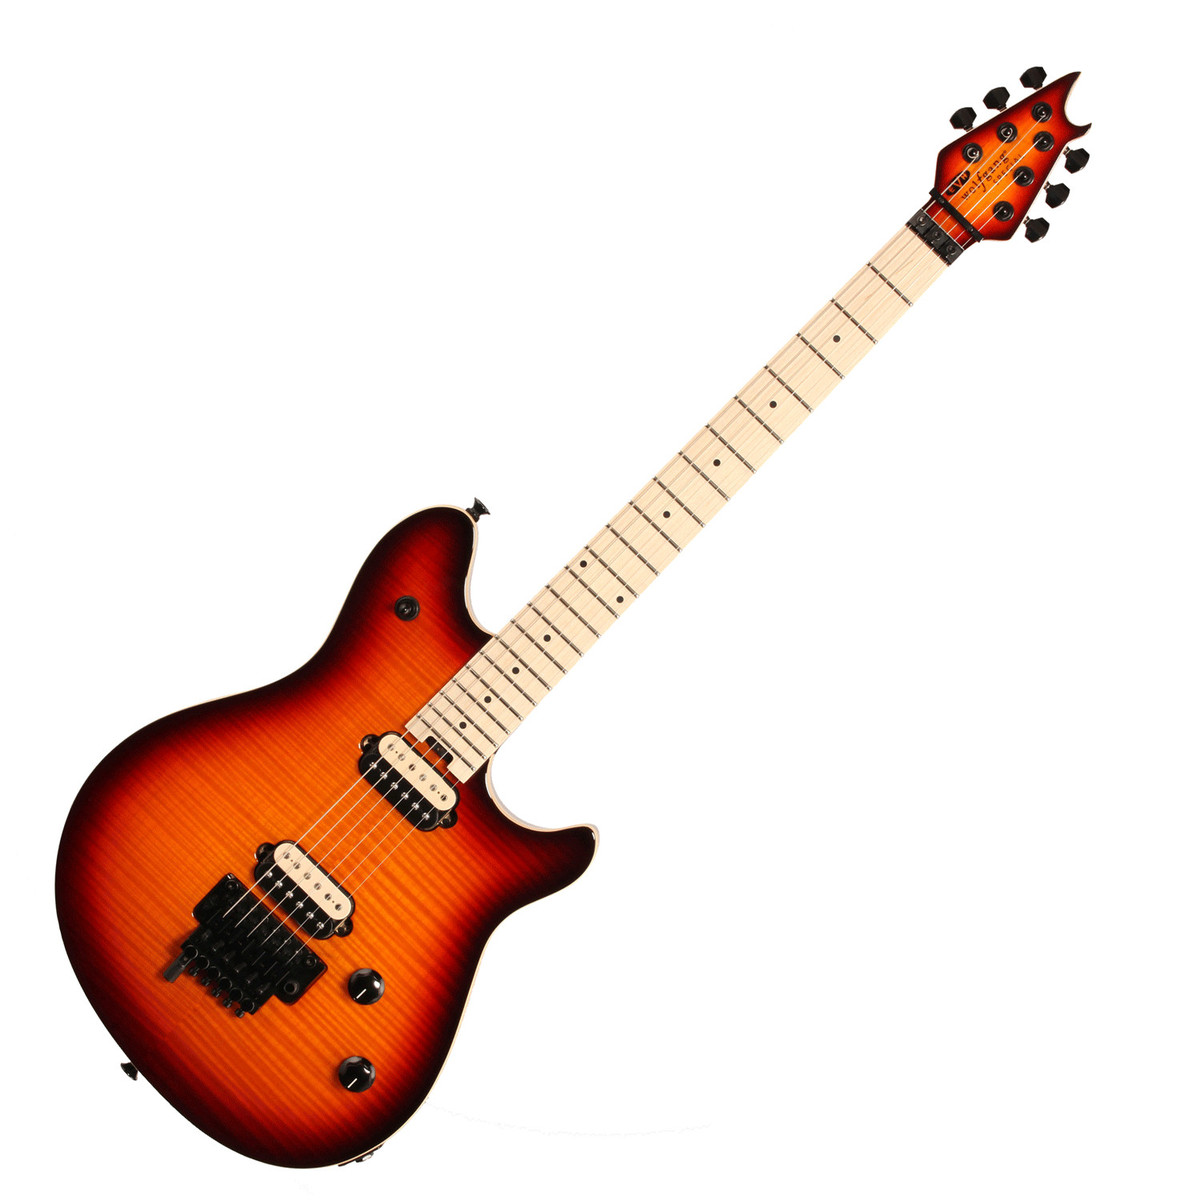 evh wolfgang special flamed maple guitar mn 3 tone cherry burst at gear4music. Black Bedroom Furniture Sets. Home Design Ideas